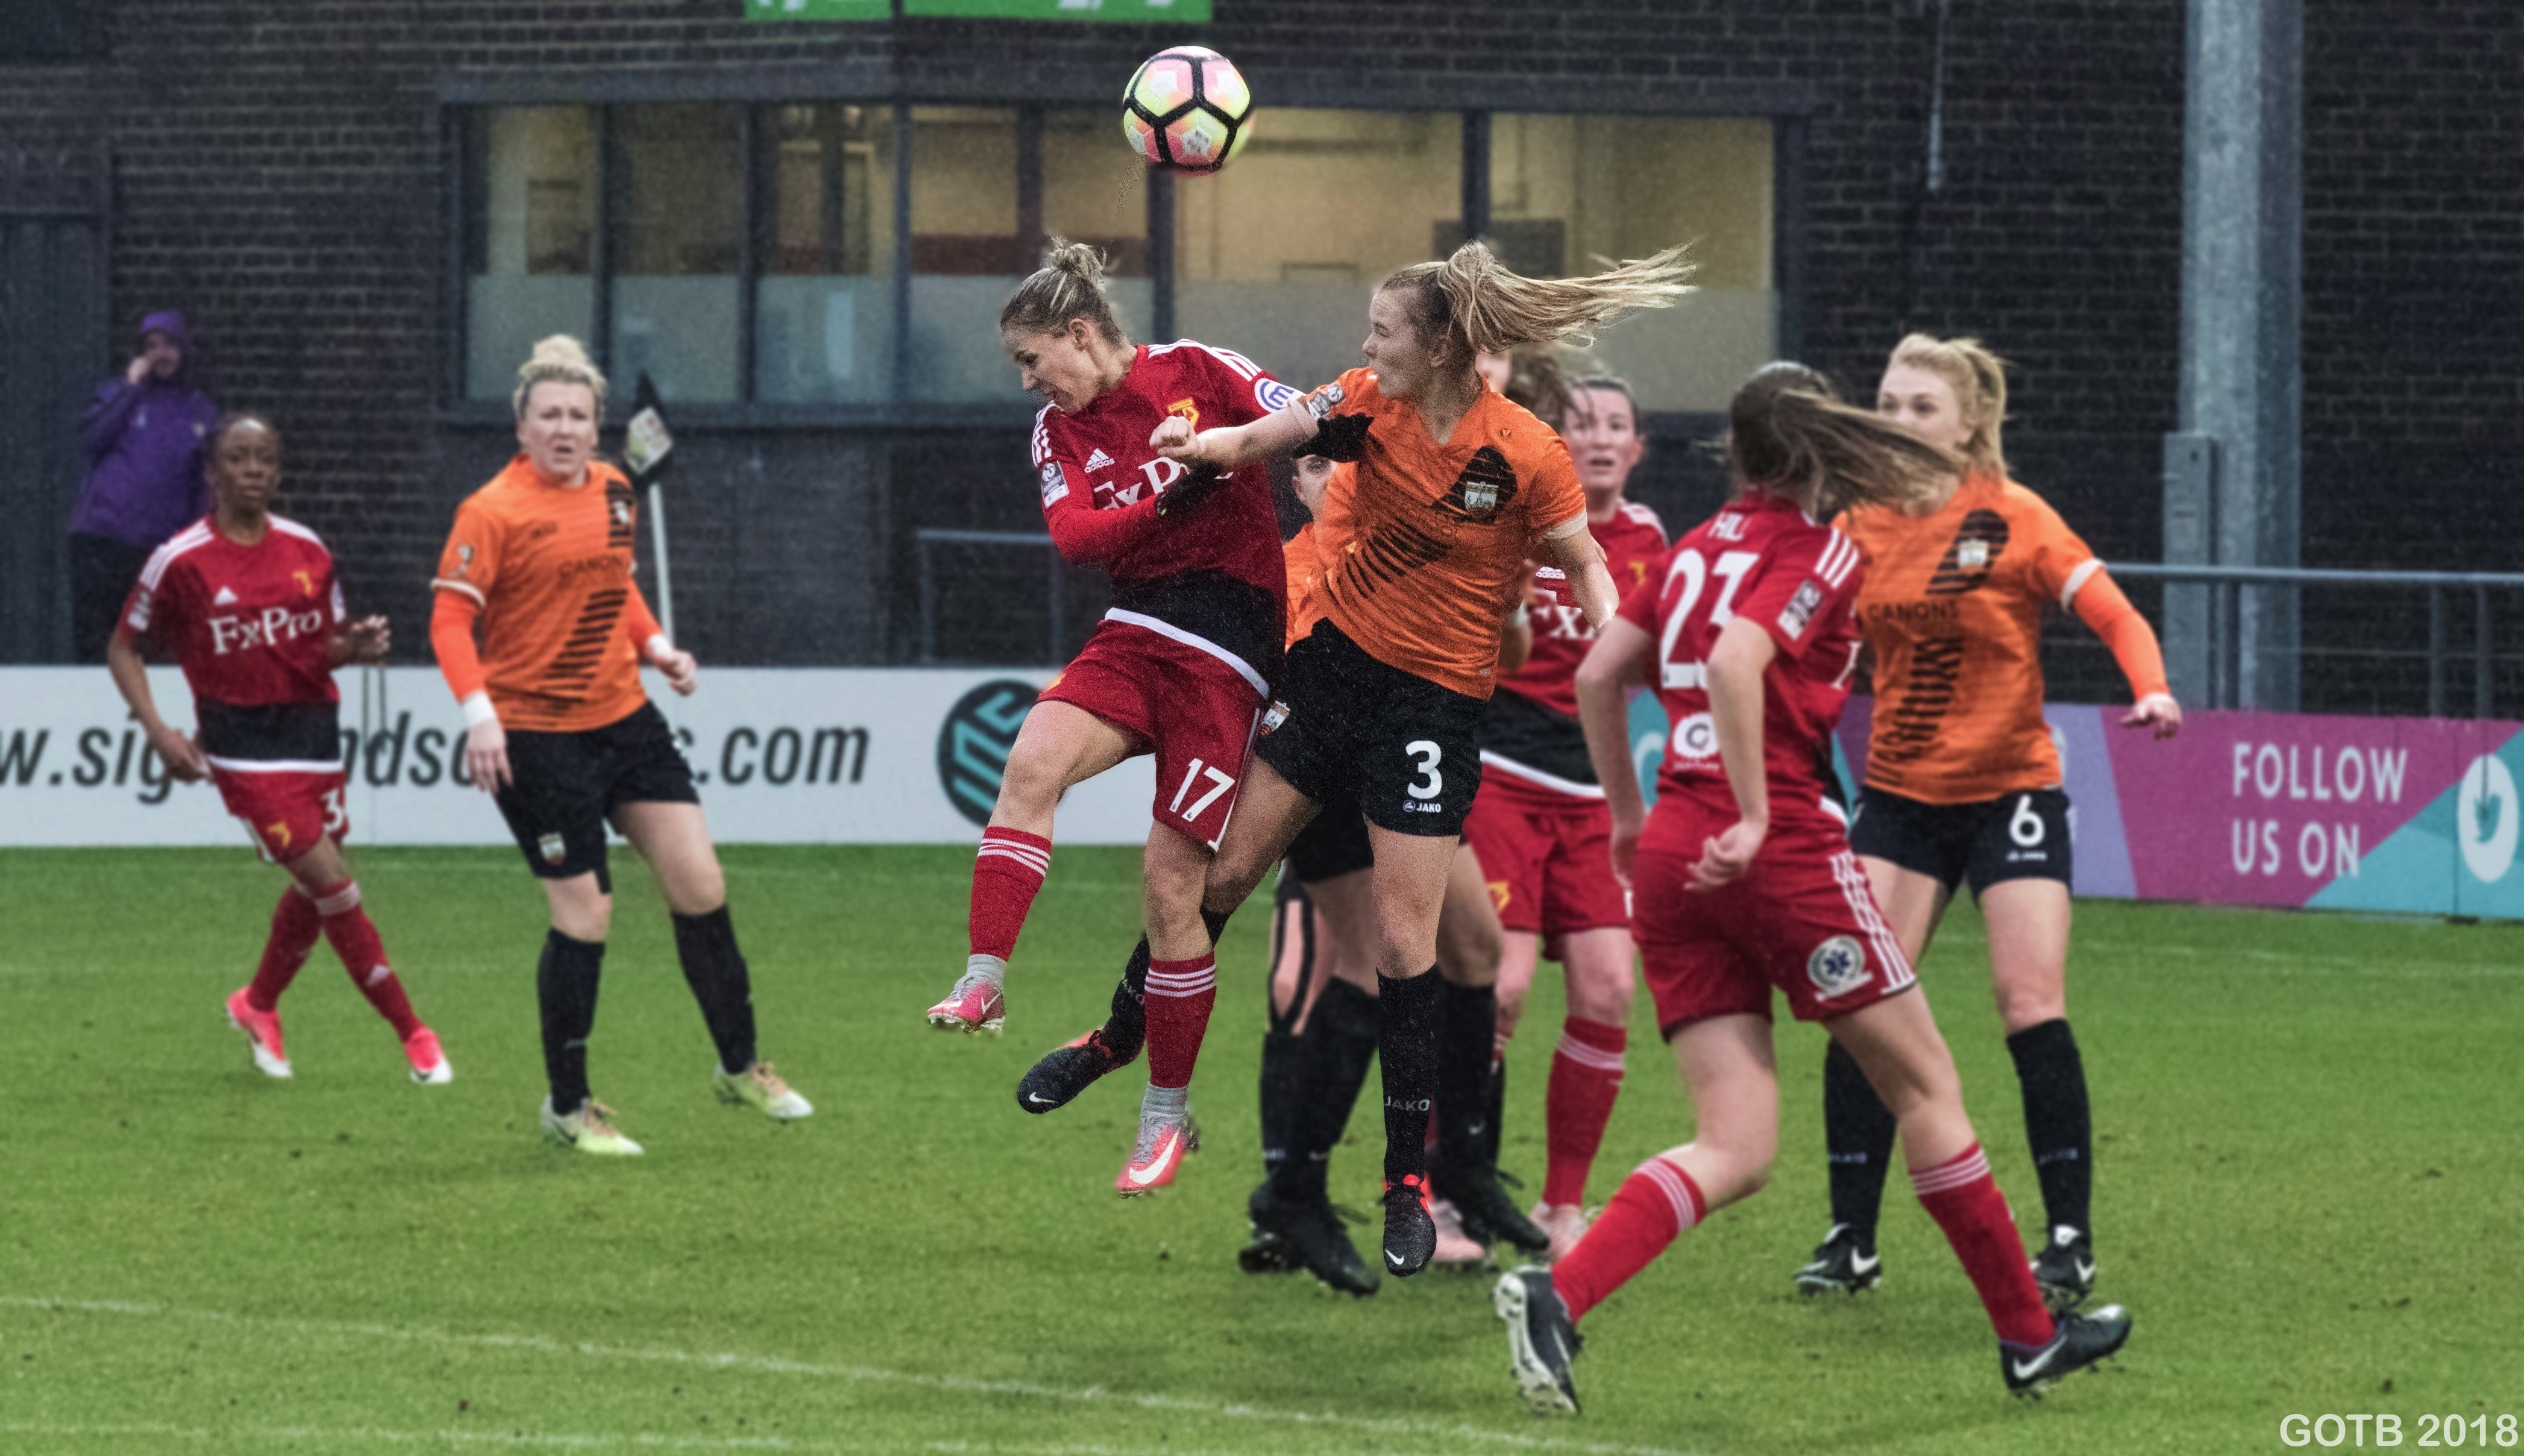 London Bees v Watford, FAWSL 2